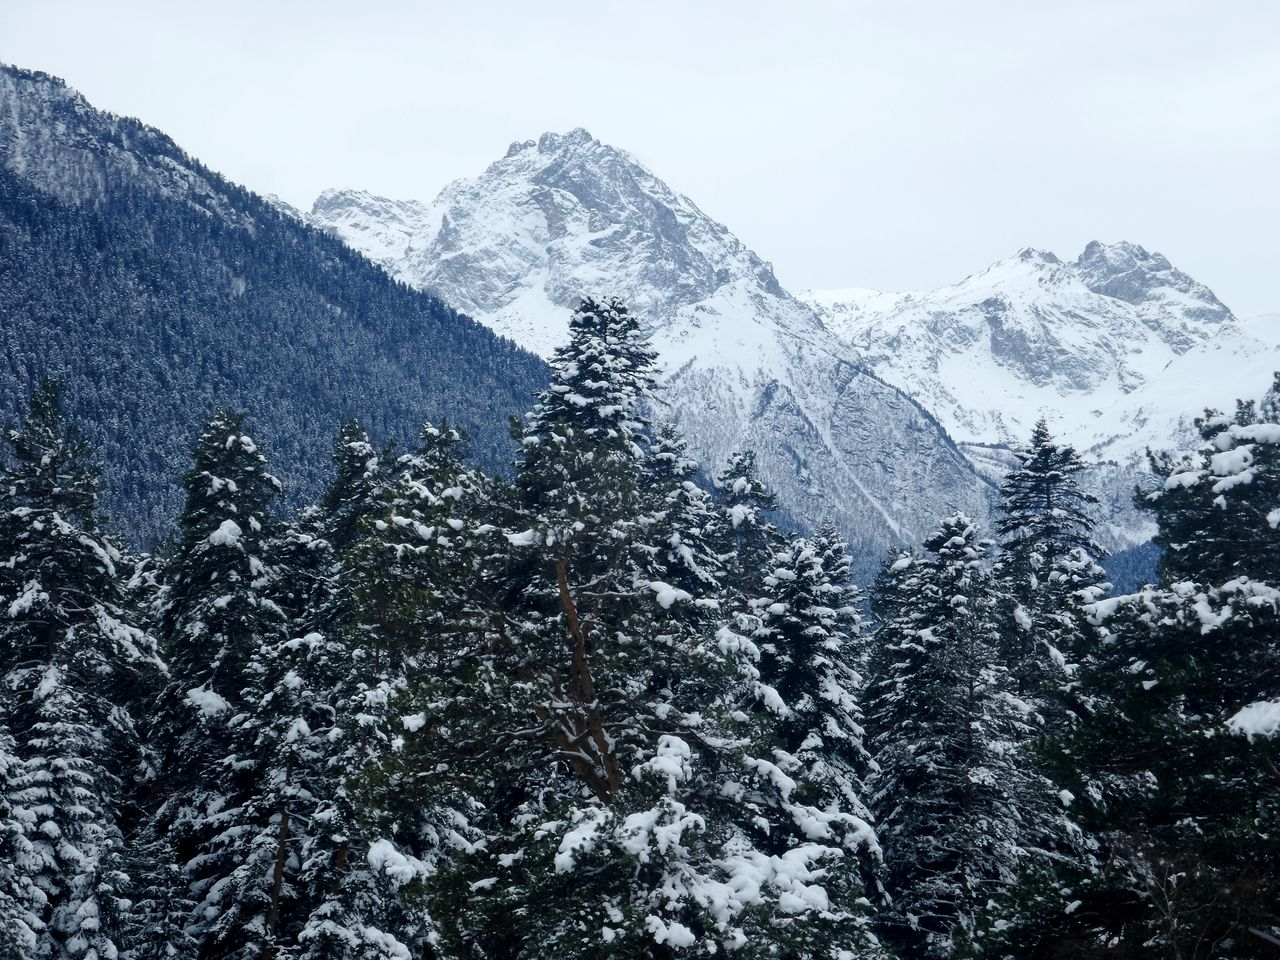 Low Angle View Of Snow Covered Trees And Mountains Against Sky